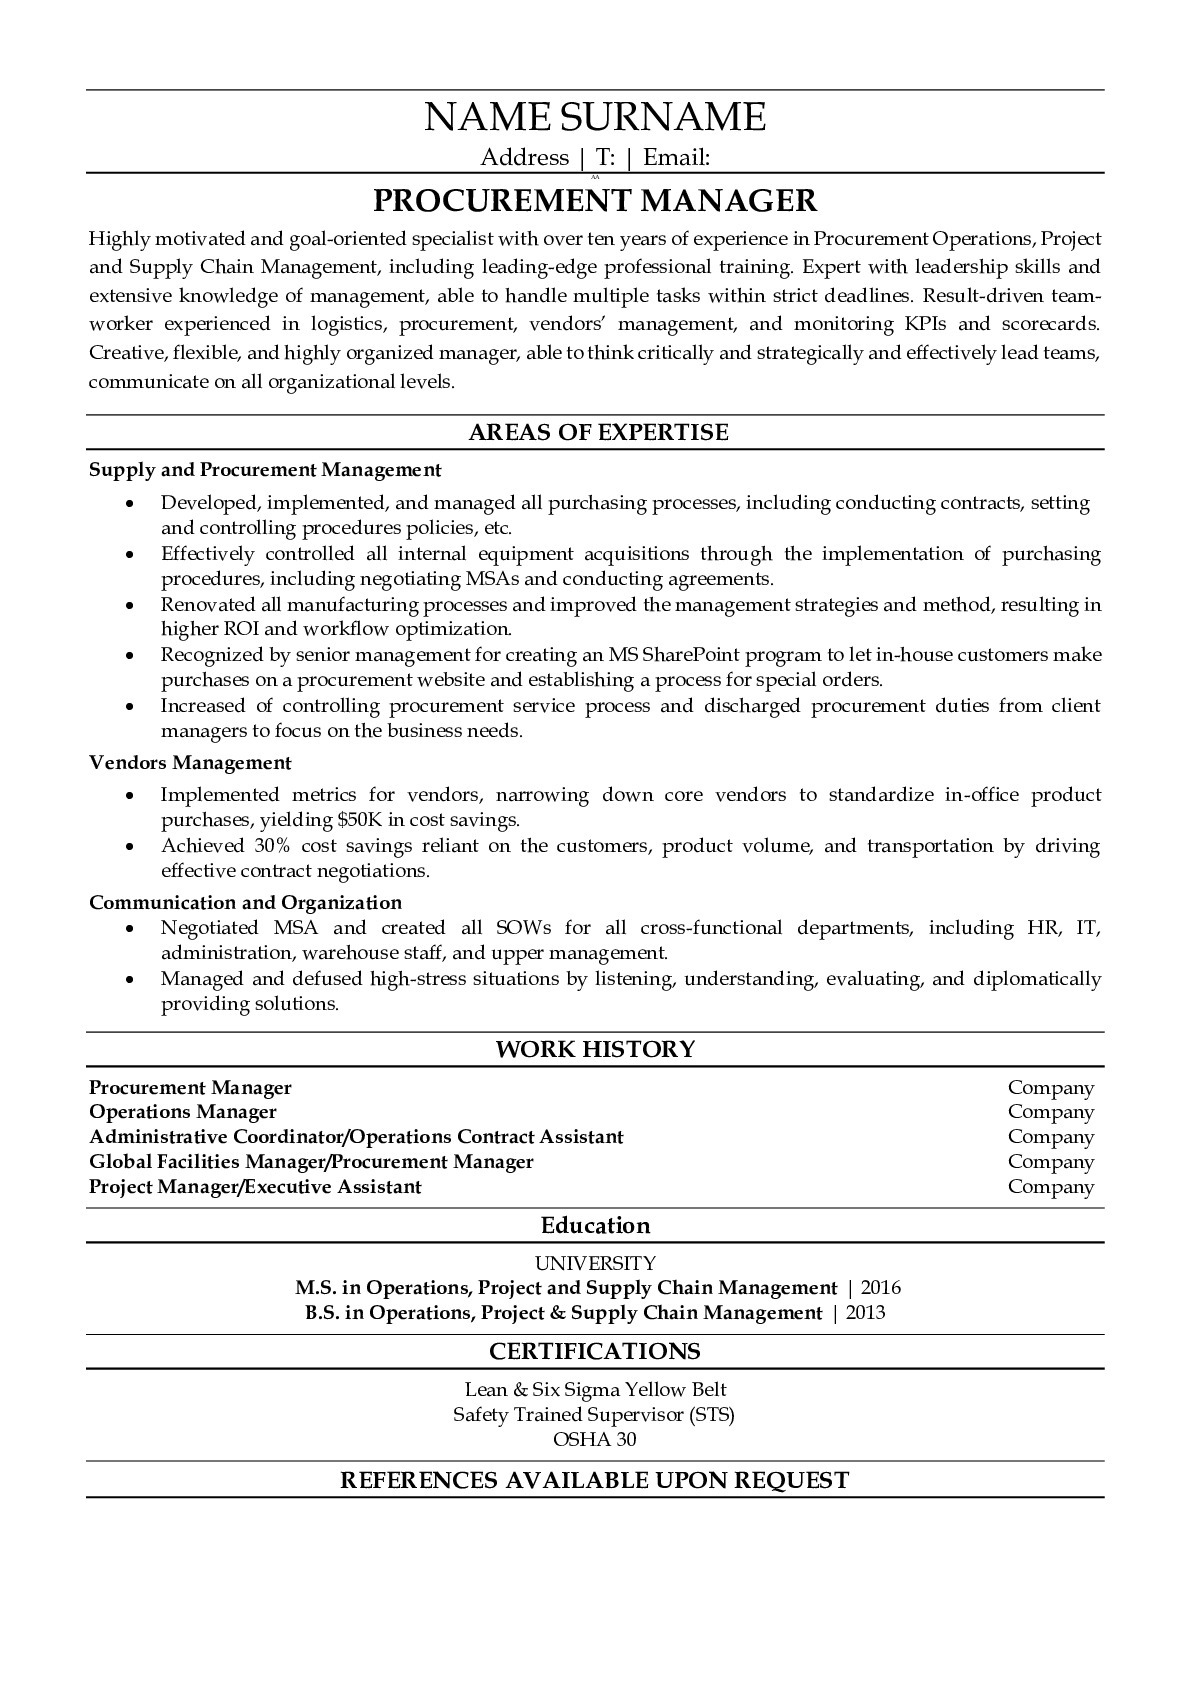 Resume Example for Property Manager